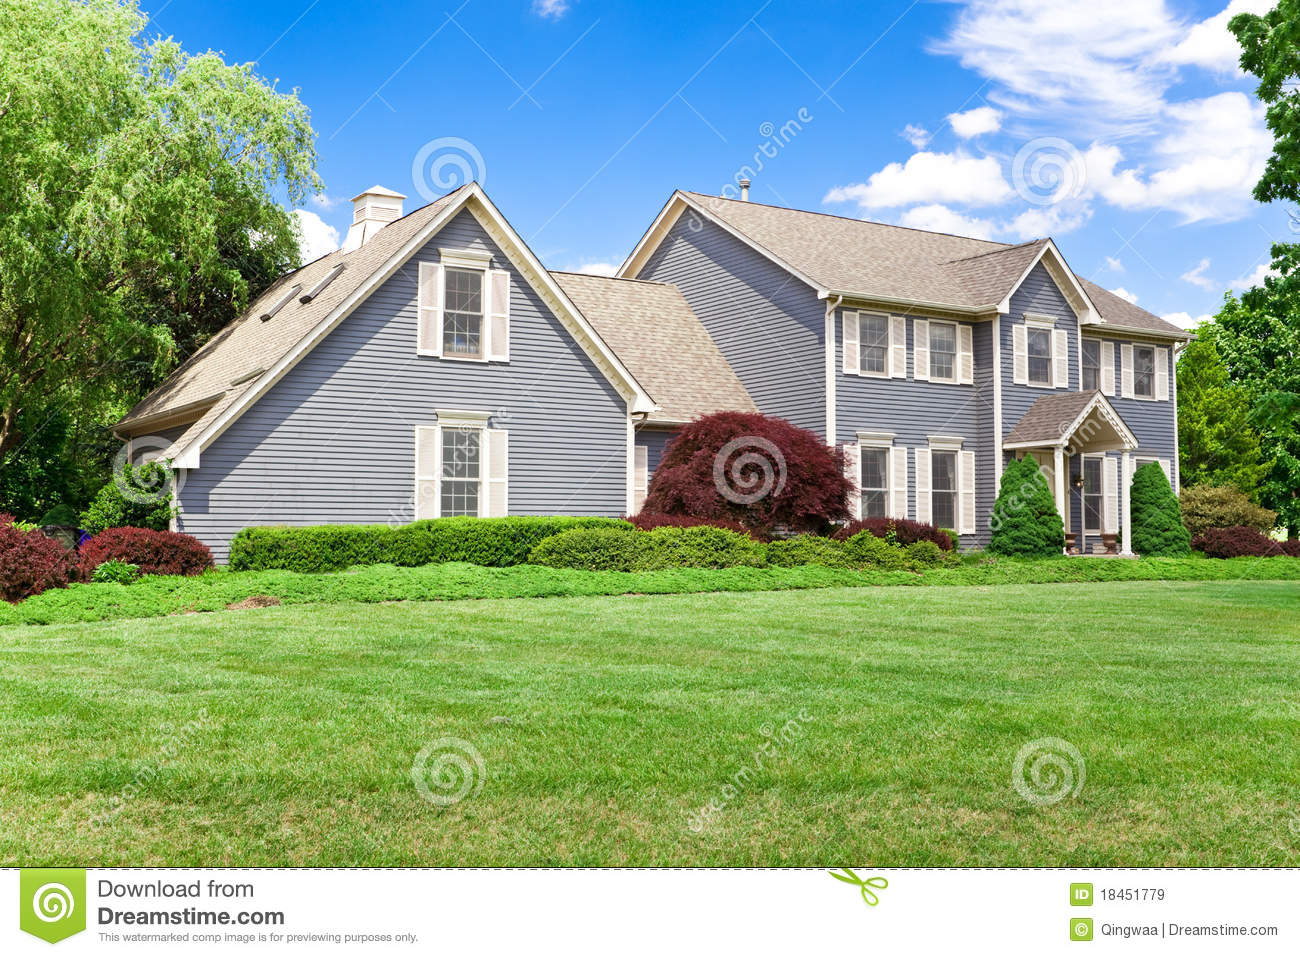 single men in suburb maryland fac Suburb maryland fac maids, house cleaning for all home cleaning service and office maid services company maid service, apartment cleaners and move in / move out in suburb maryland fac md.